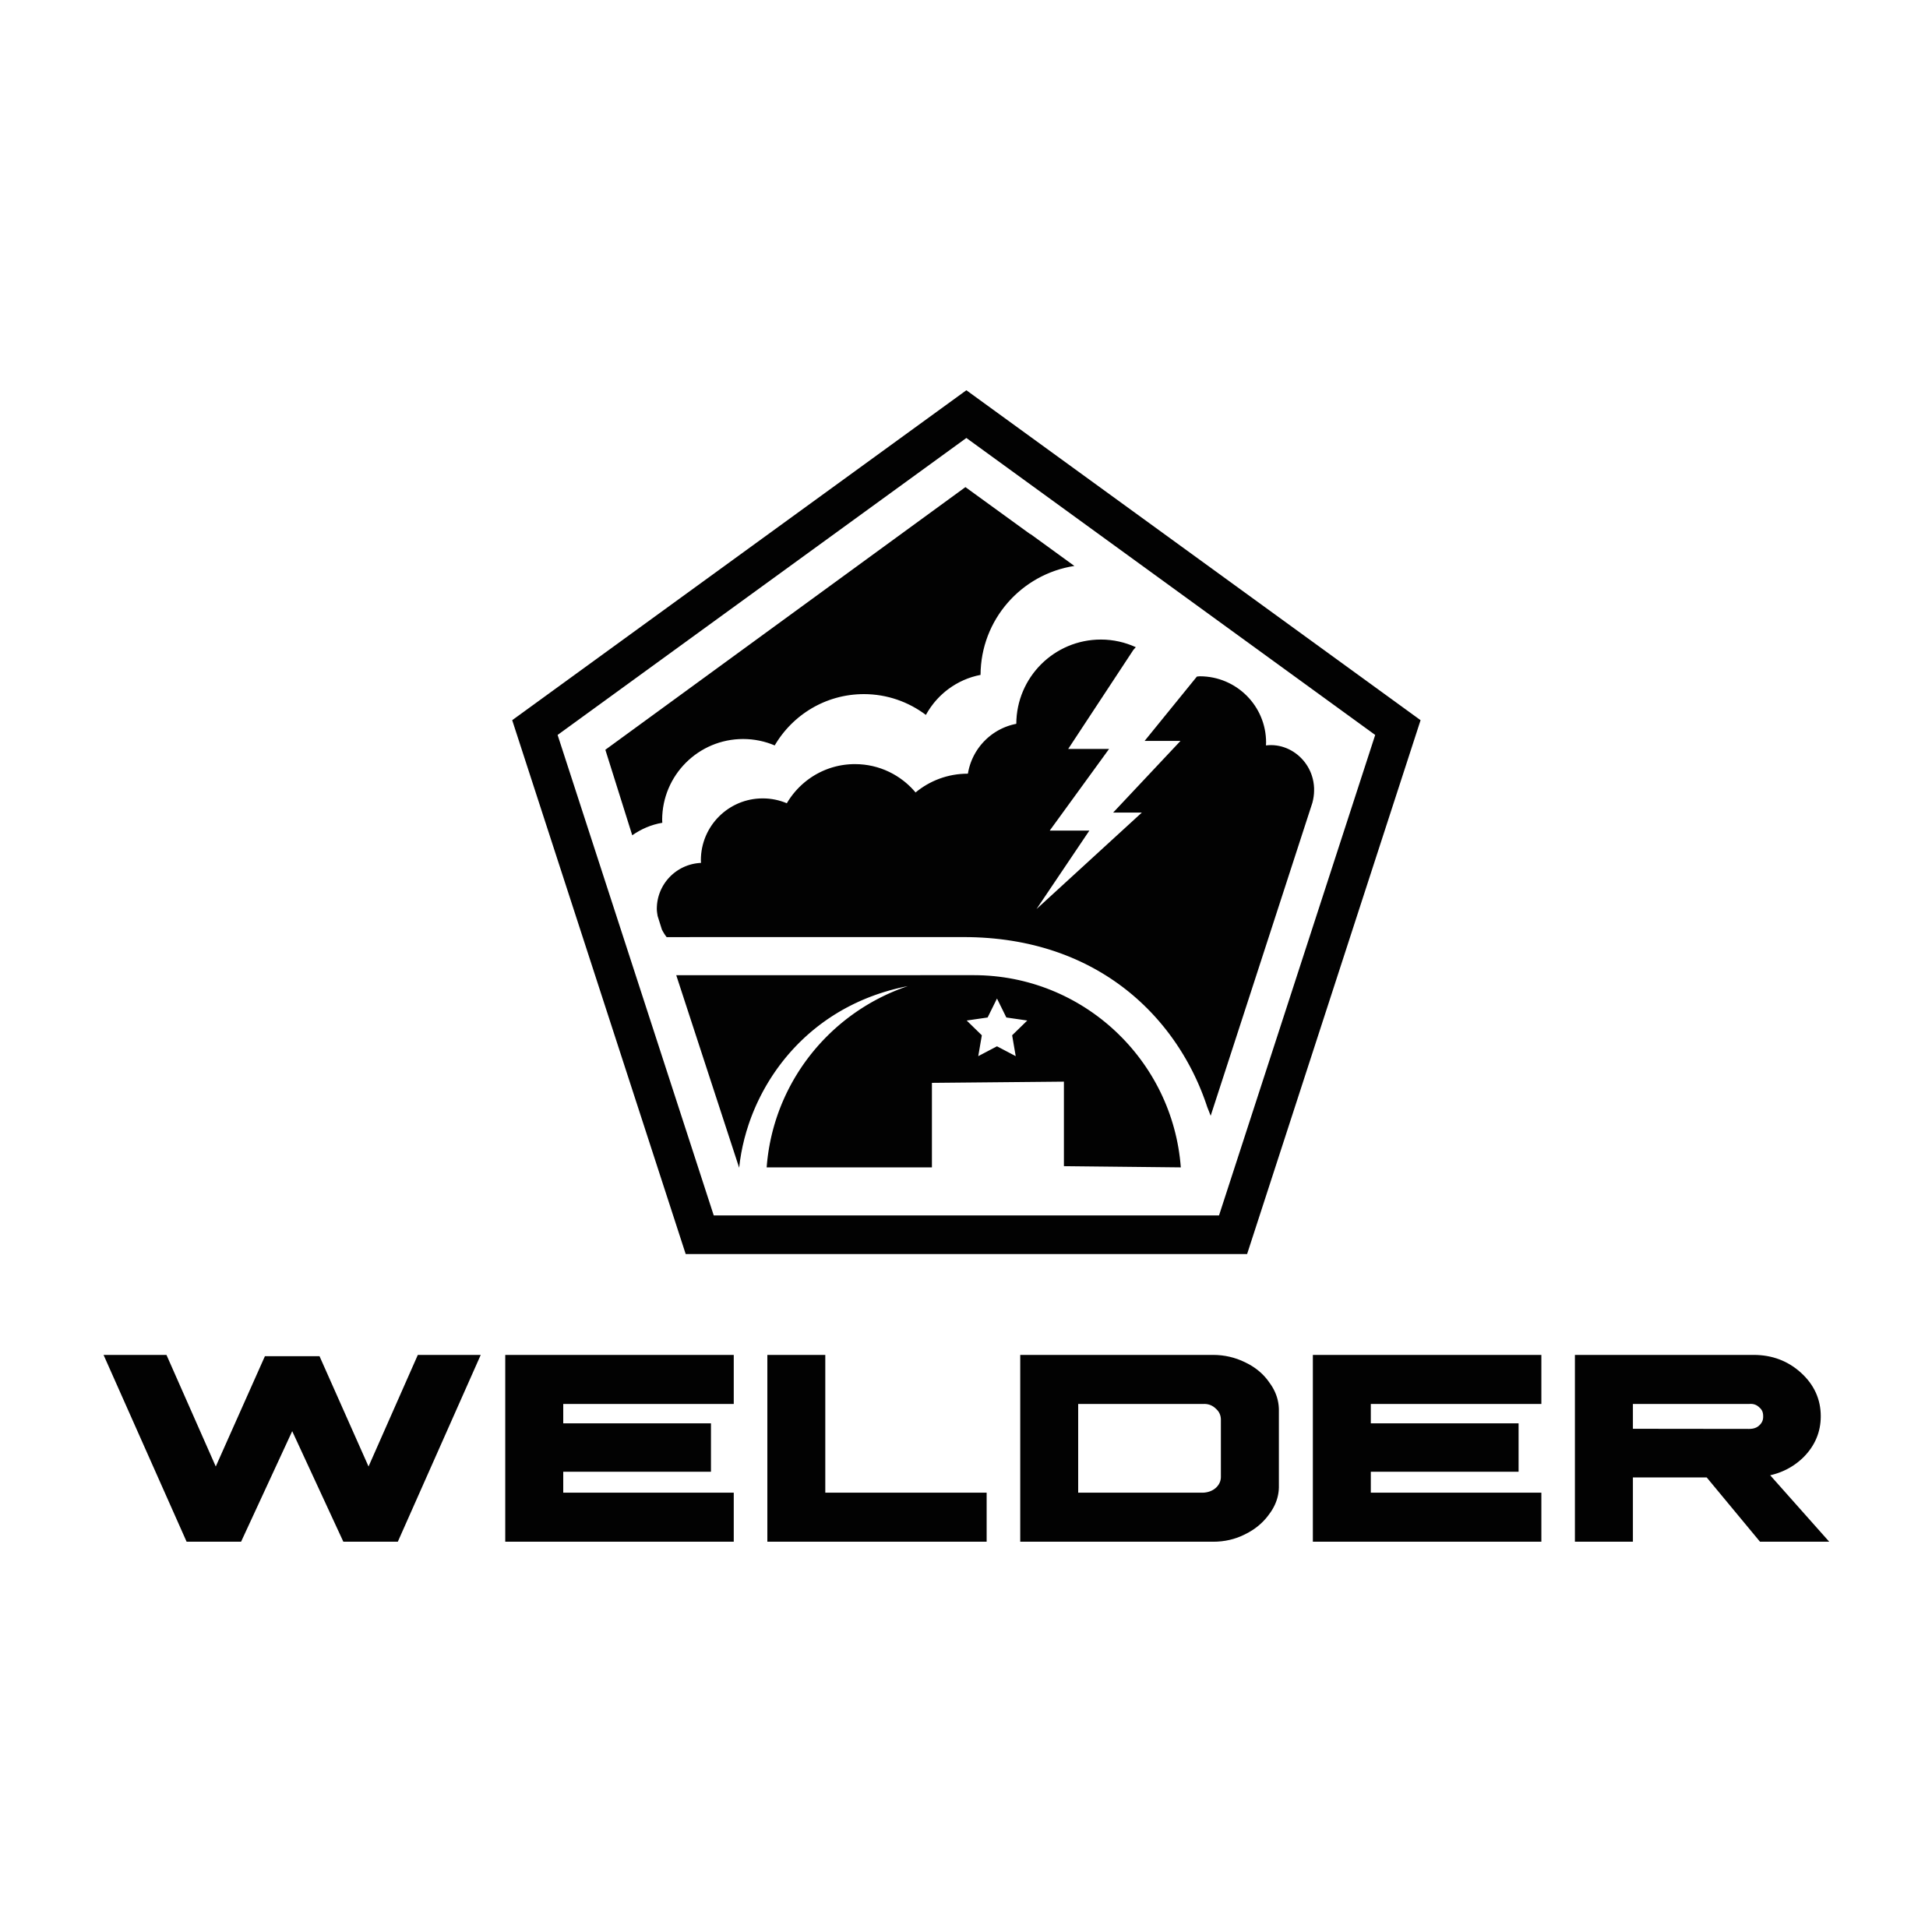 Design a logo for WELDER API for military buildings under extreme weather